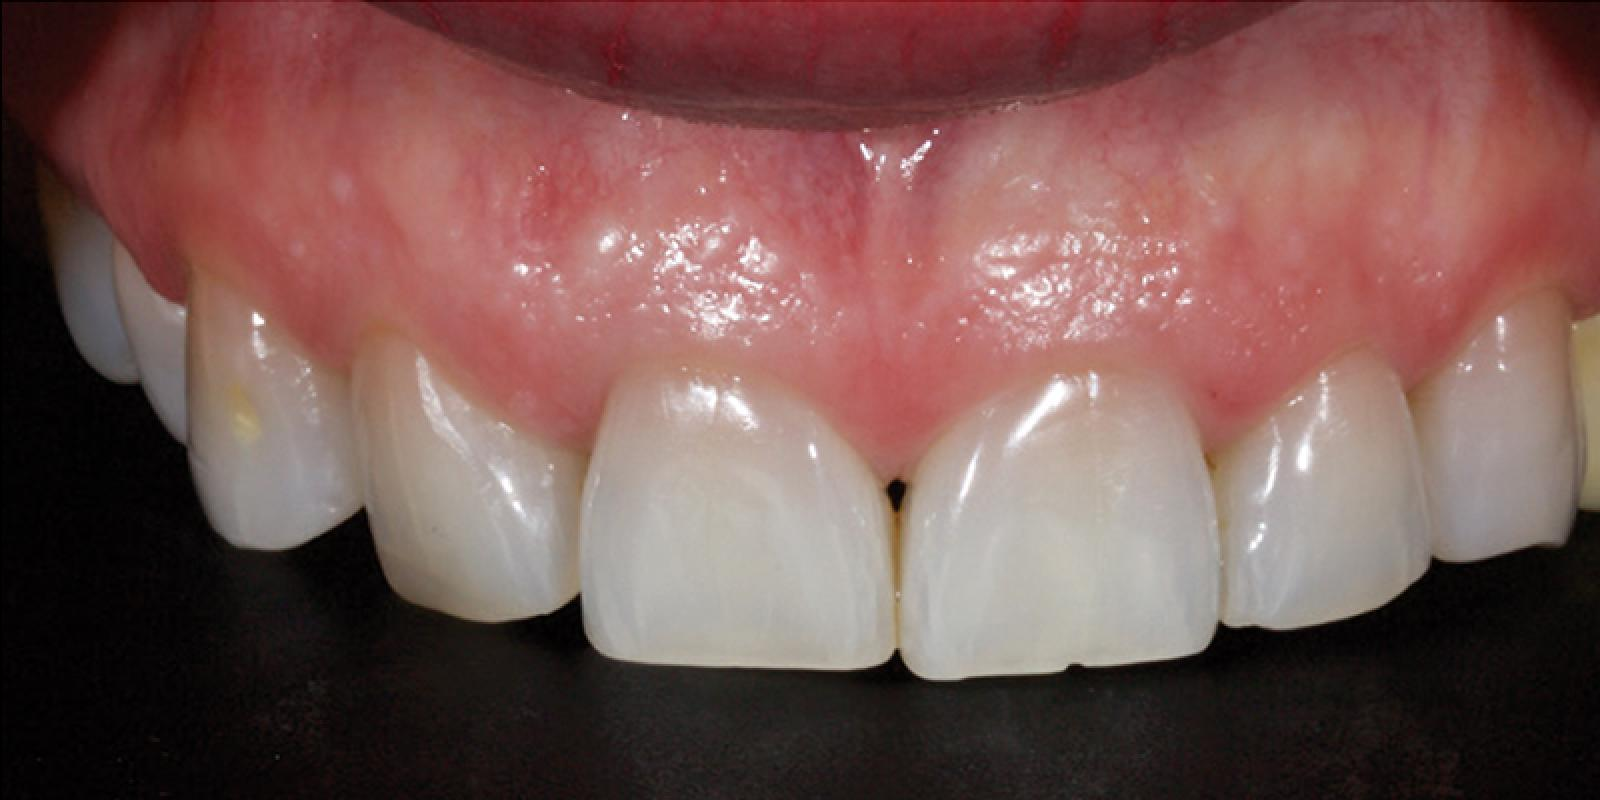 Jason Smithson - Direct Resin Restorations in the Anterior Dentition - Treating wear step 1